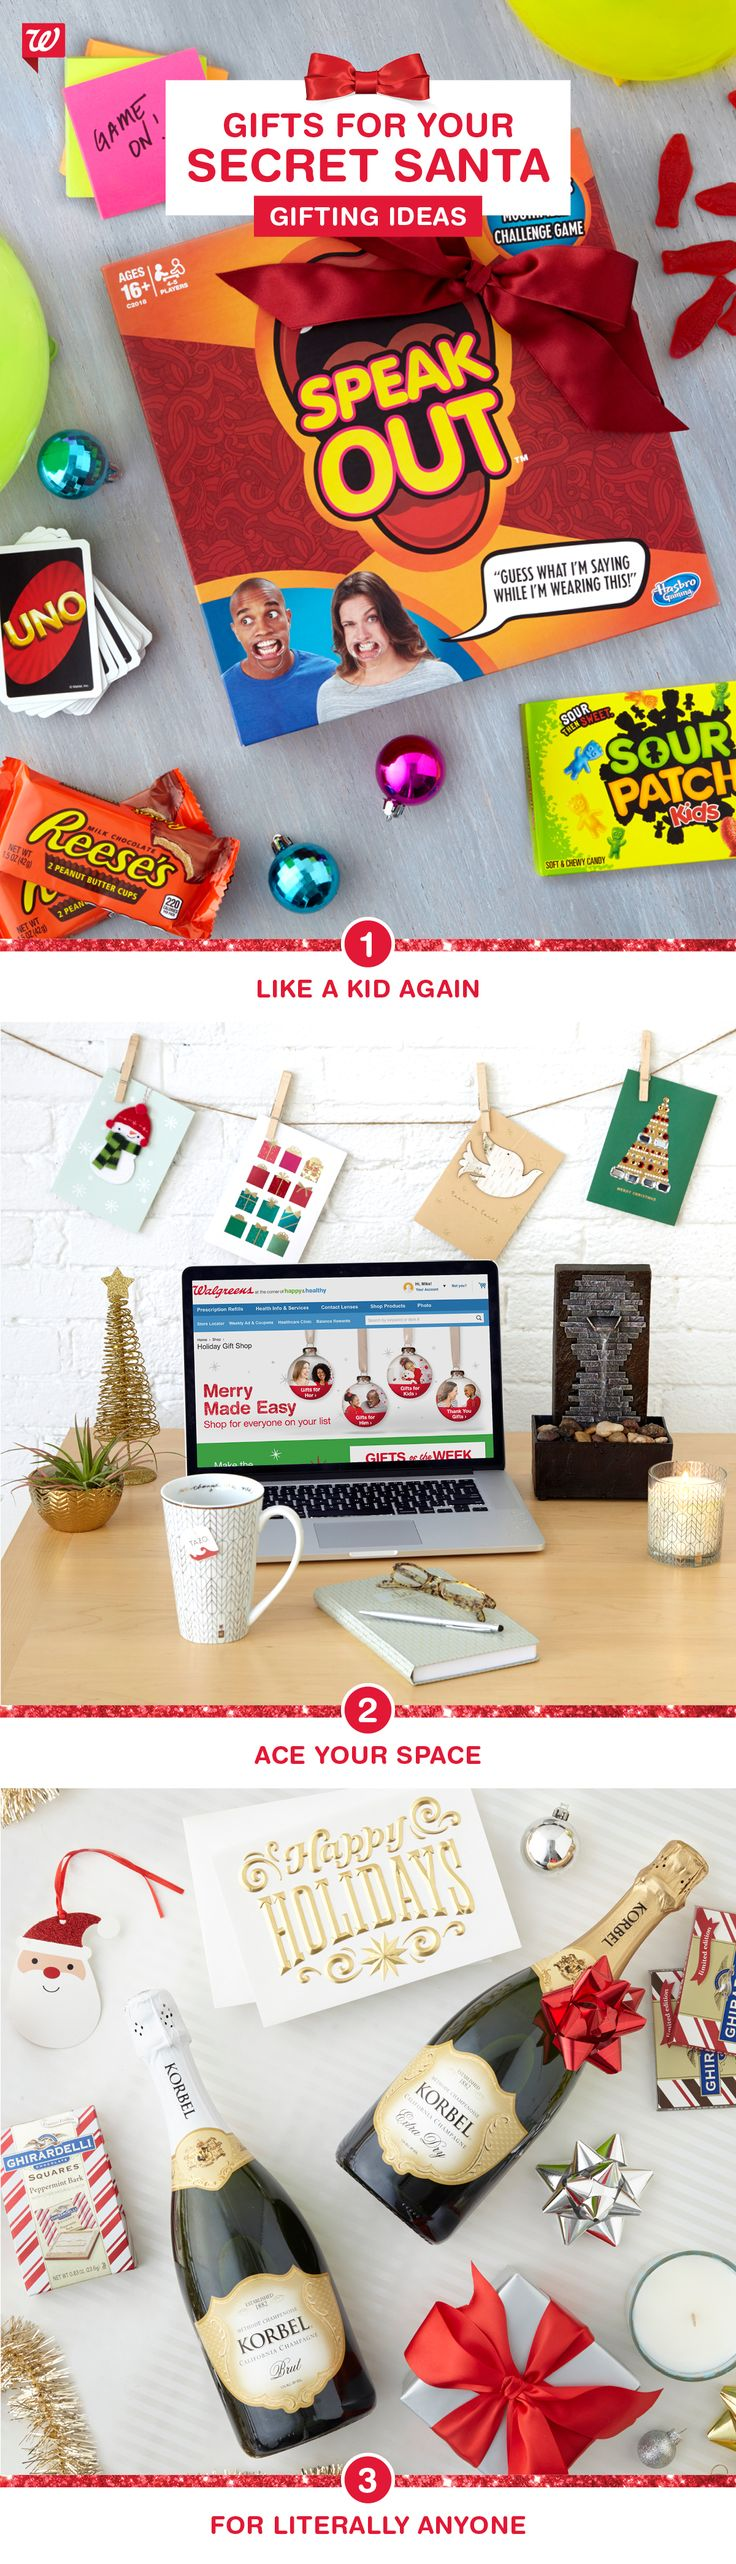 From zen spaces to engaging games (that get everyone in on the fun!) to sparkling wishes and chocolatey dreams, Walgreens has everything you need to ace any Secret Santa, even if you don't know the recipient well.